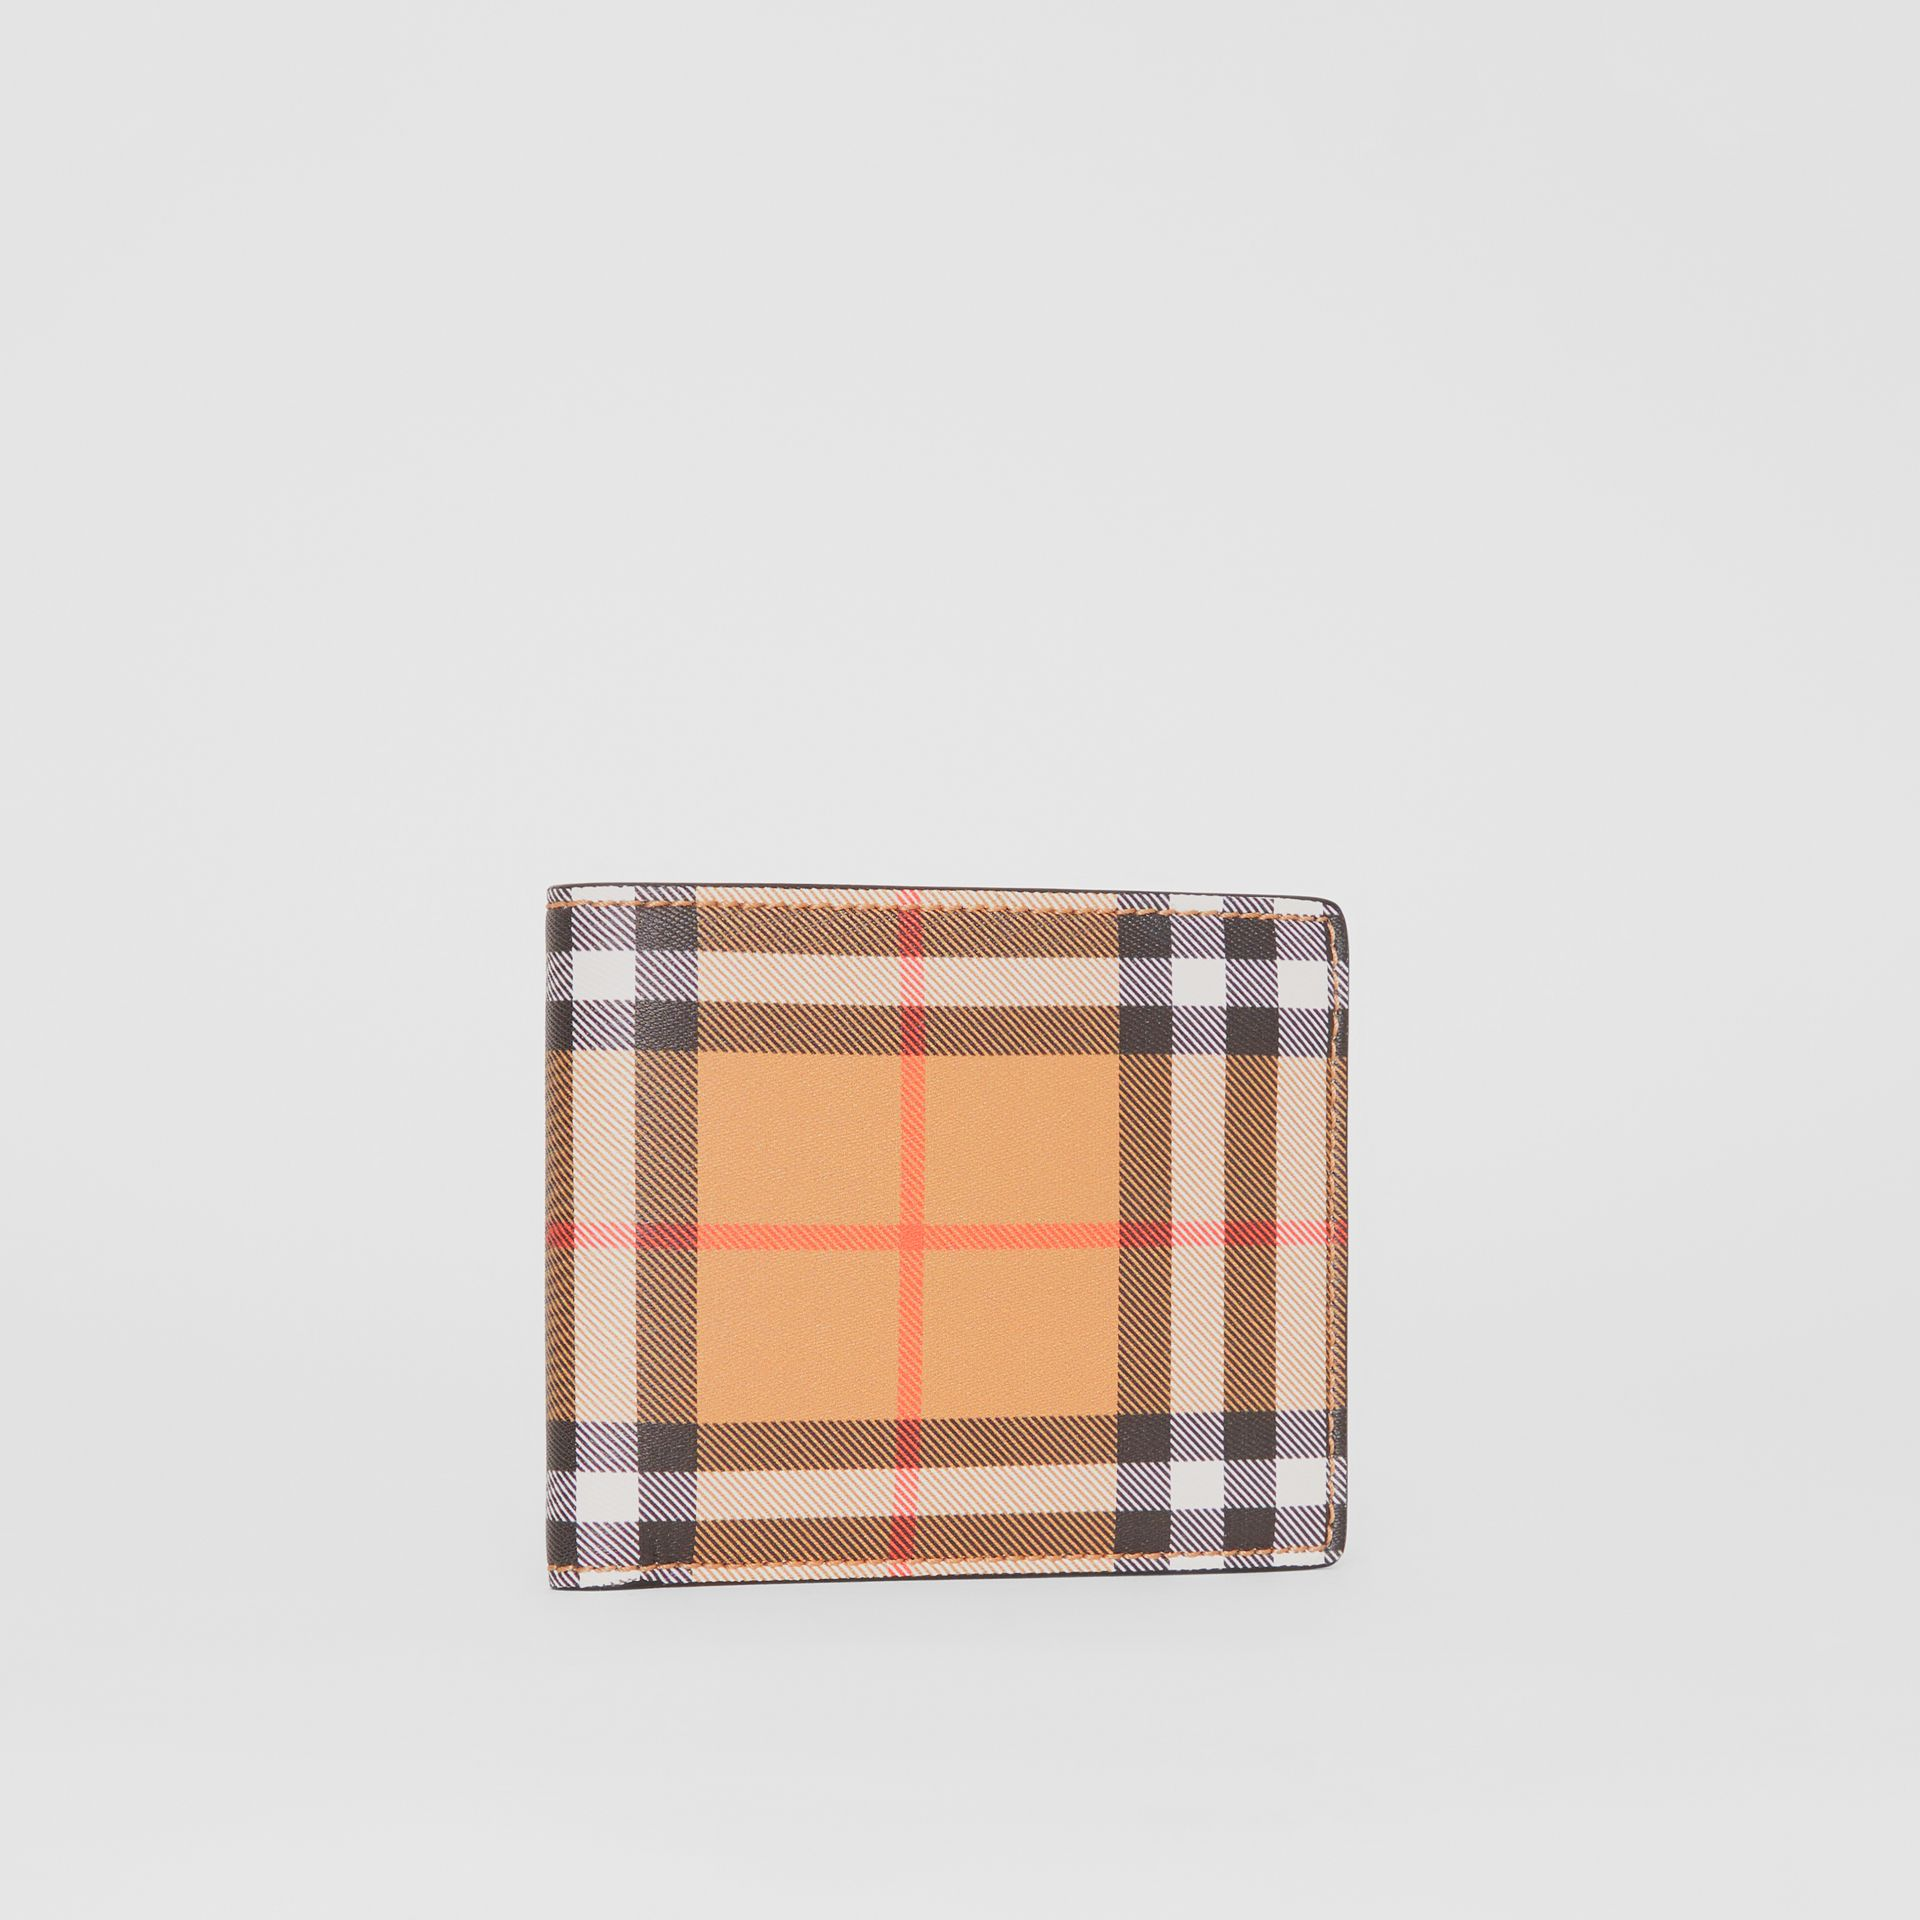 Vintage Check Leather ID Wallet in Black - Men | Burberry Australia - gallery image 3